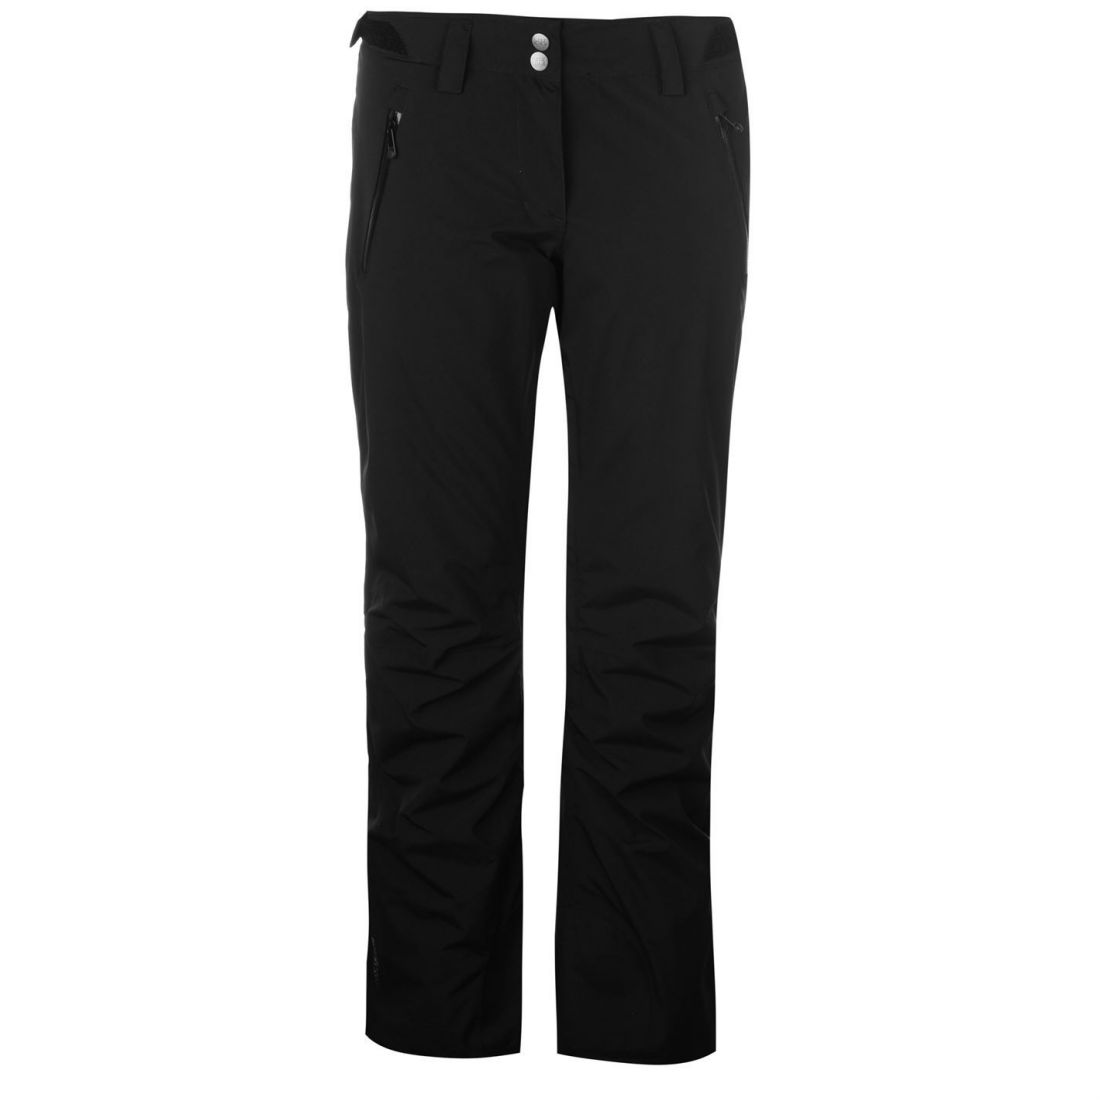 15af0cc17 Details about Helly Hansen Womens Trondra Ski Pants Salopettes Trousers  Bottoms Waterproof